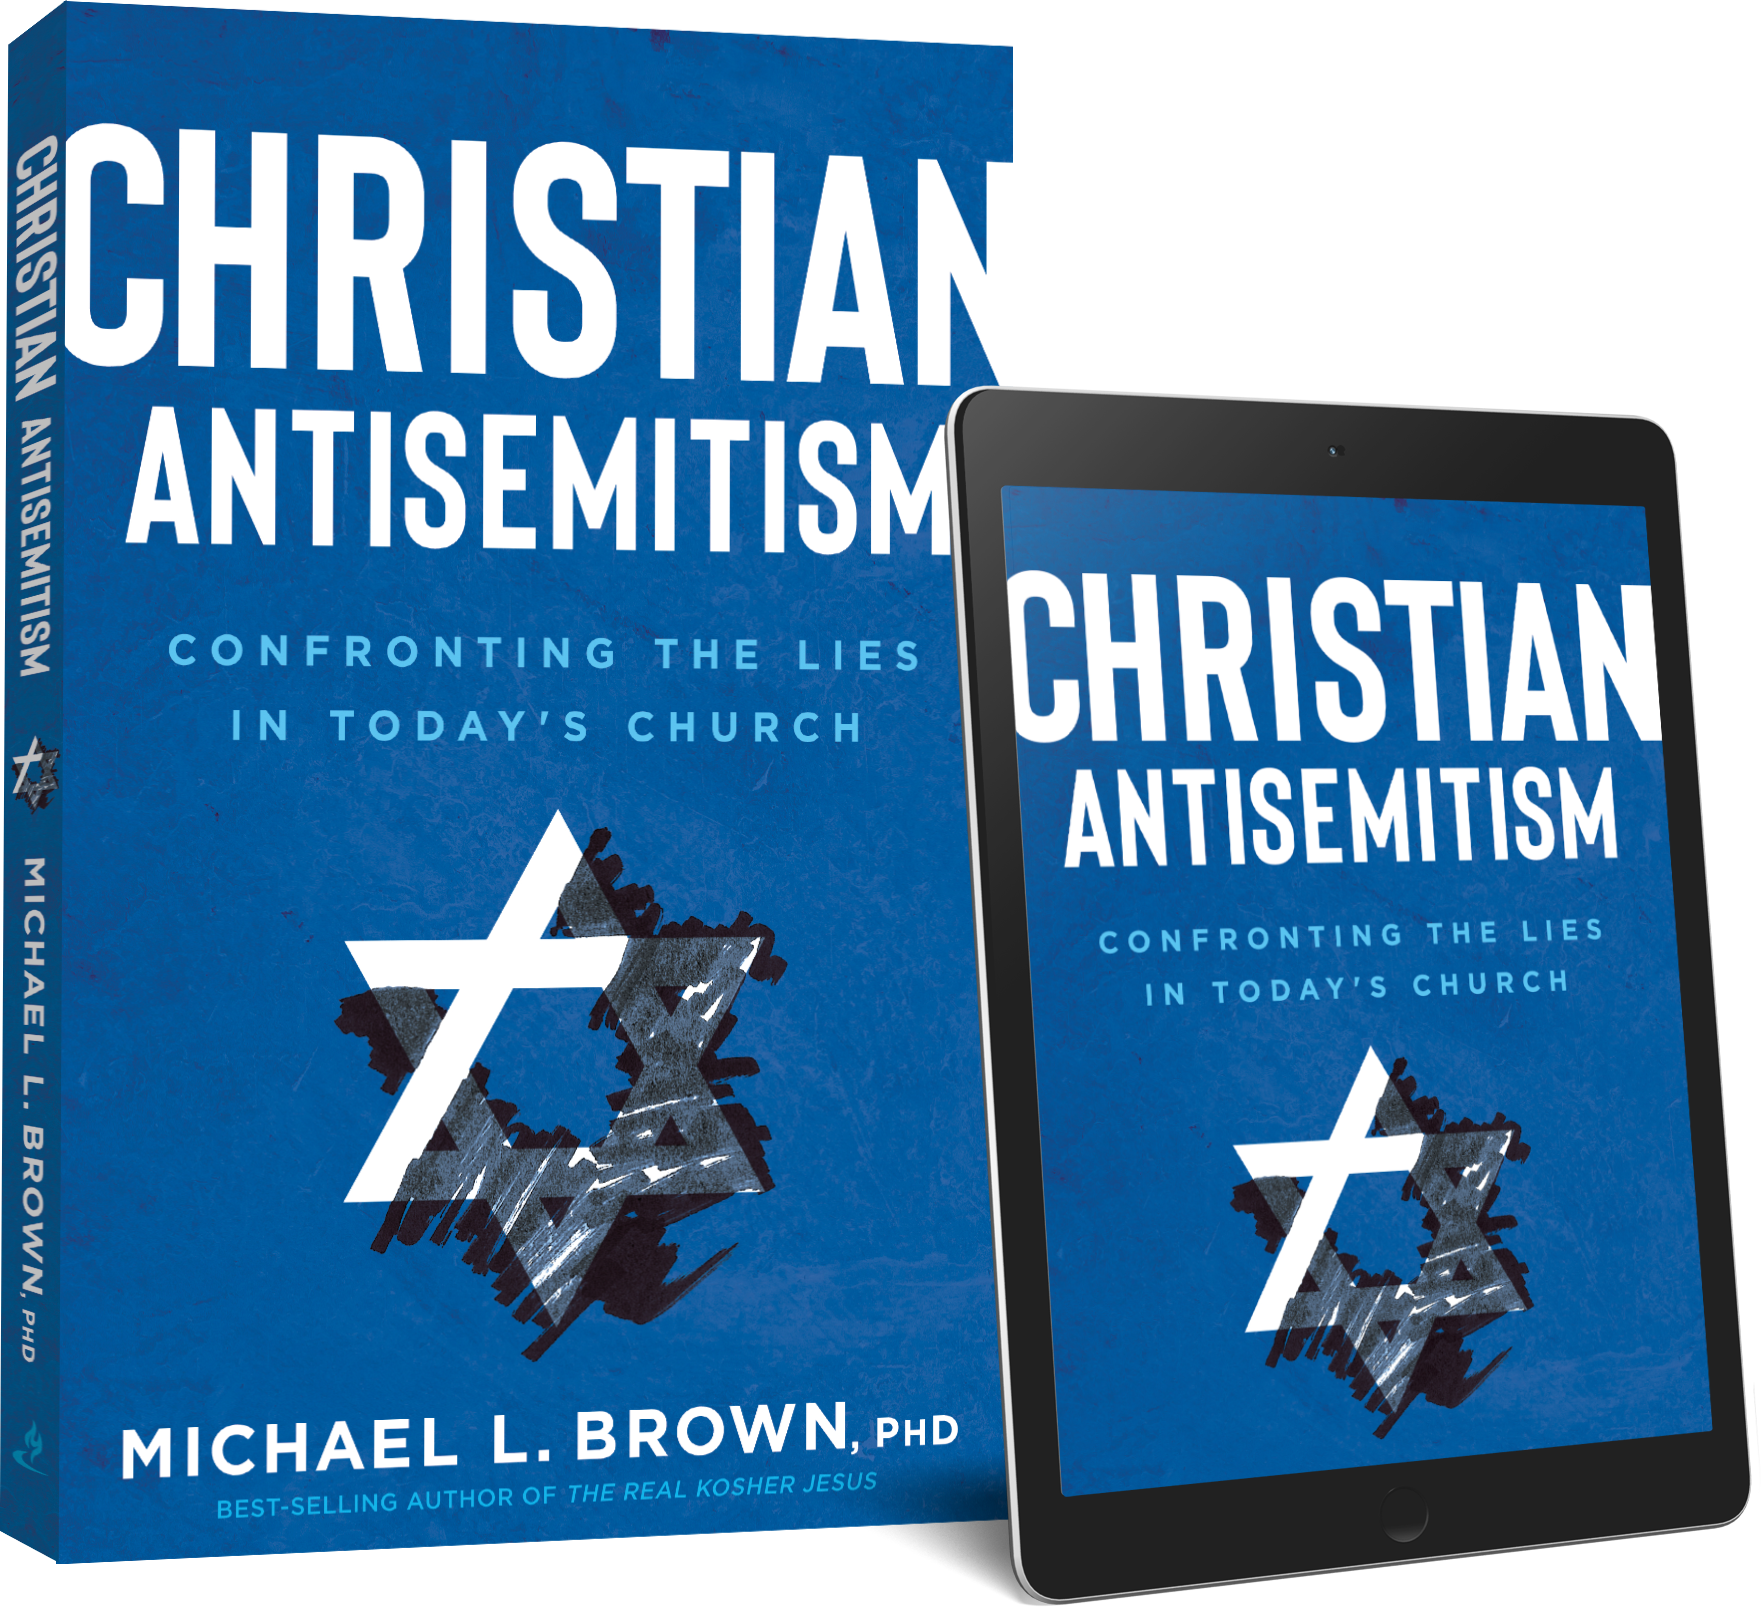 Christian Antisemitism BOOK COVER